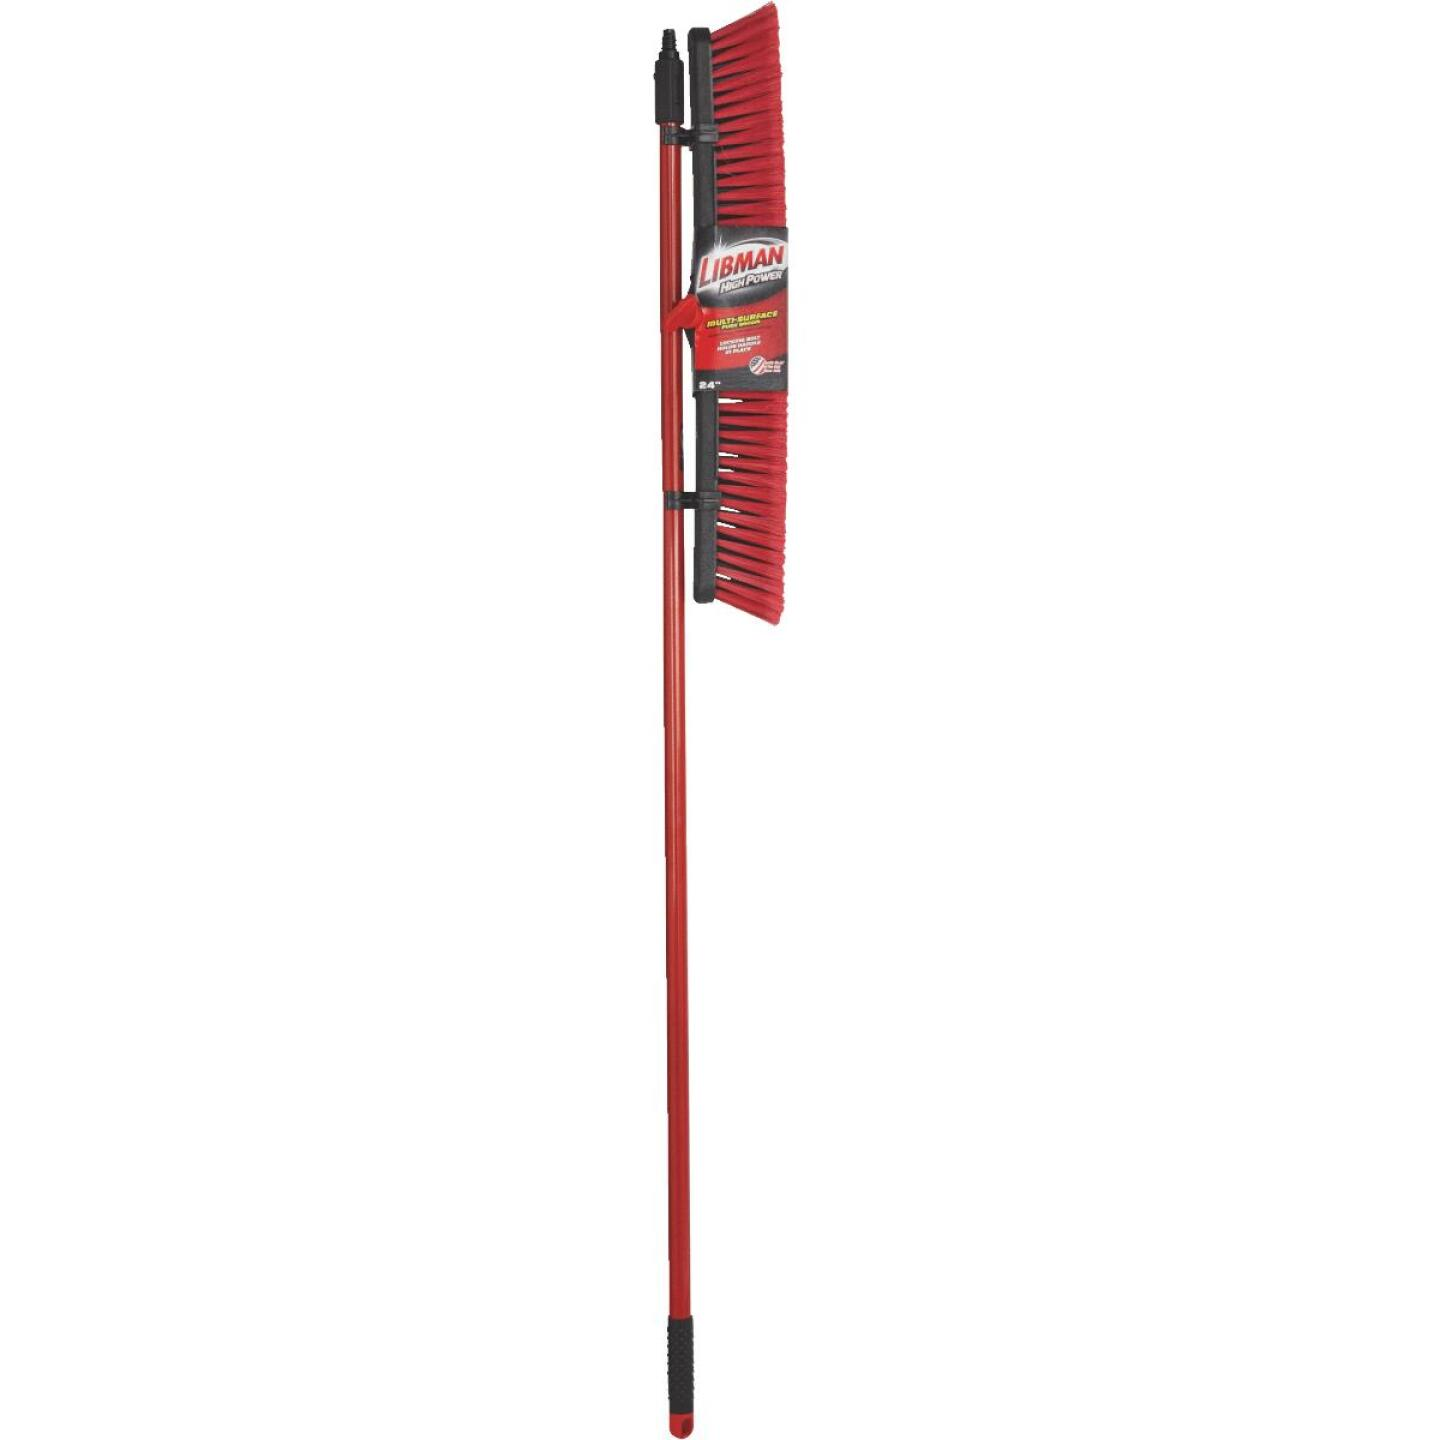 Libman 24 In. W. x 64 In. L. Steel Handle Multi-Surface Medium Sweep Push Broom Image 2